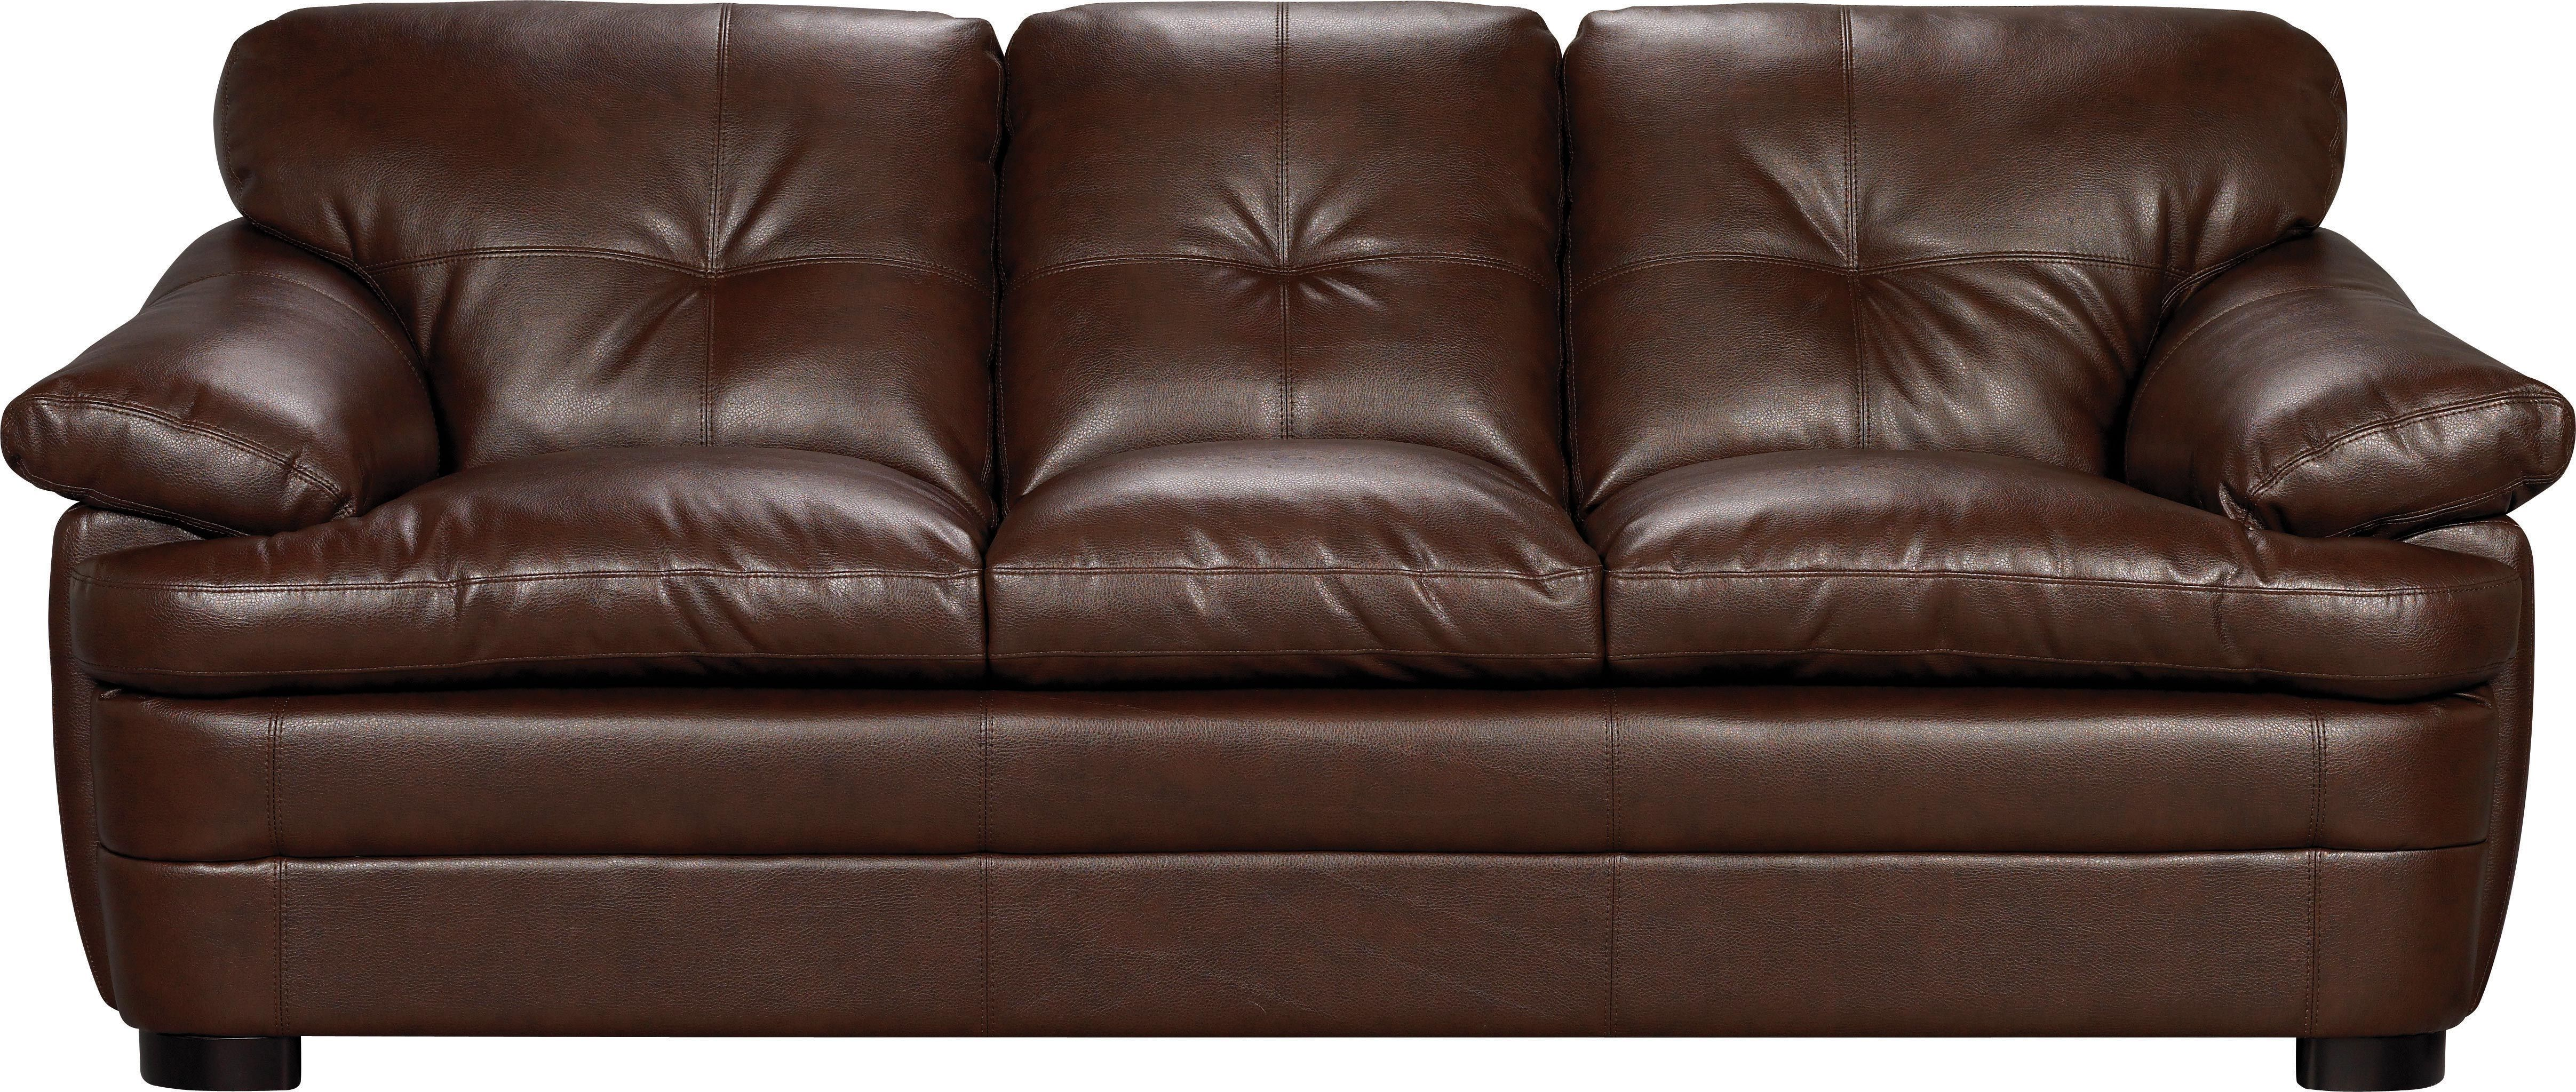 Savoy Bonded Leather Sofa Home Pinterest